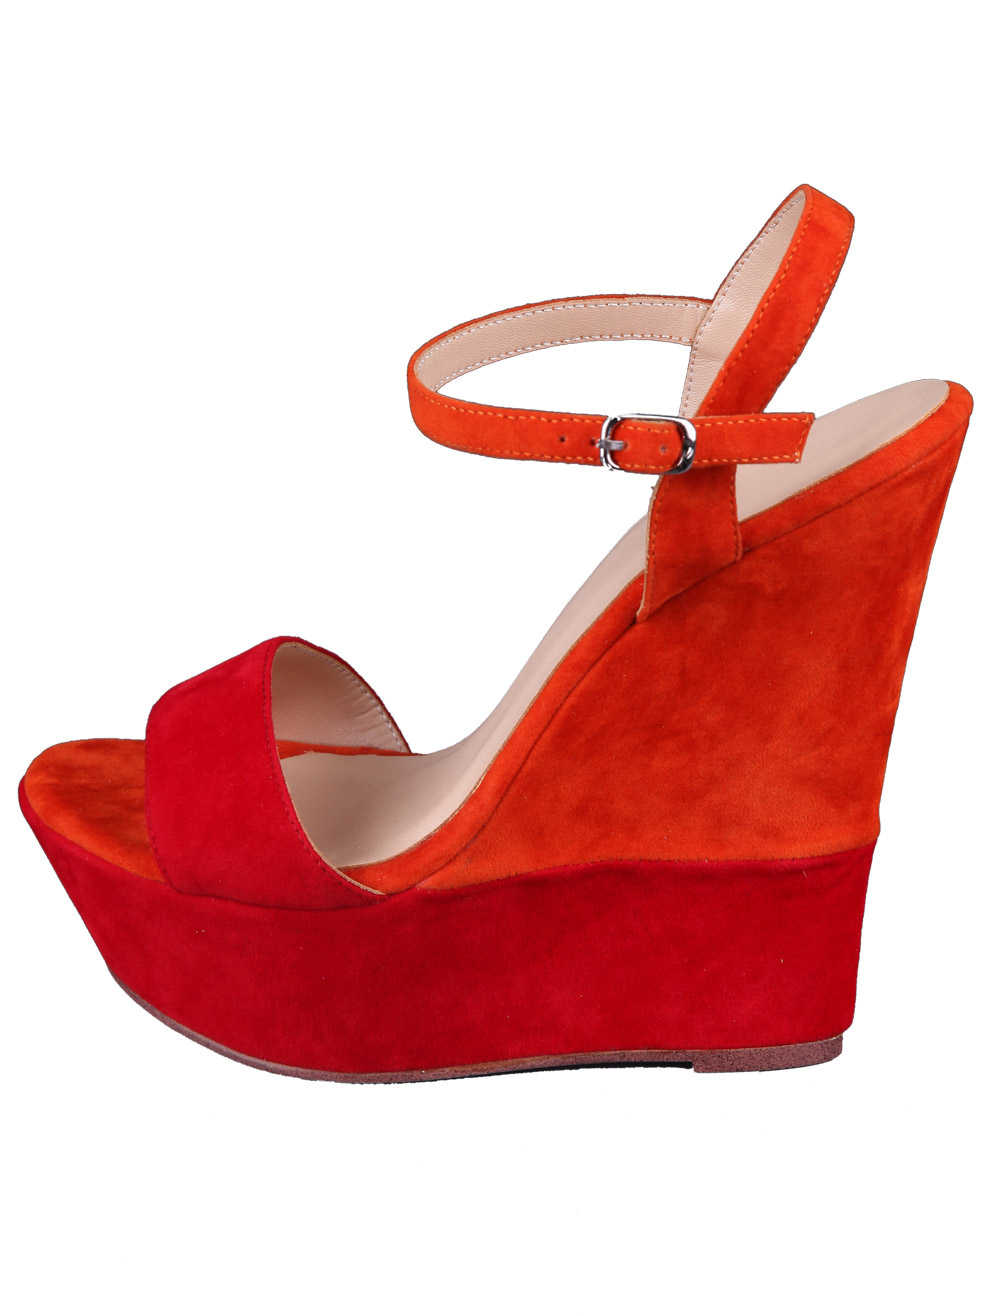 Red Wedge Sandals Suede Women's Ankle Strap ... - Red Wedge Sandals Suede Women's Ankle Strap Shoes - Milanoo.com